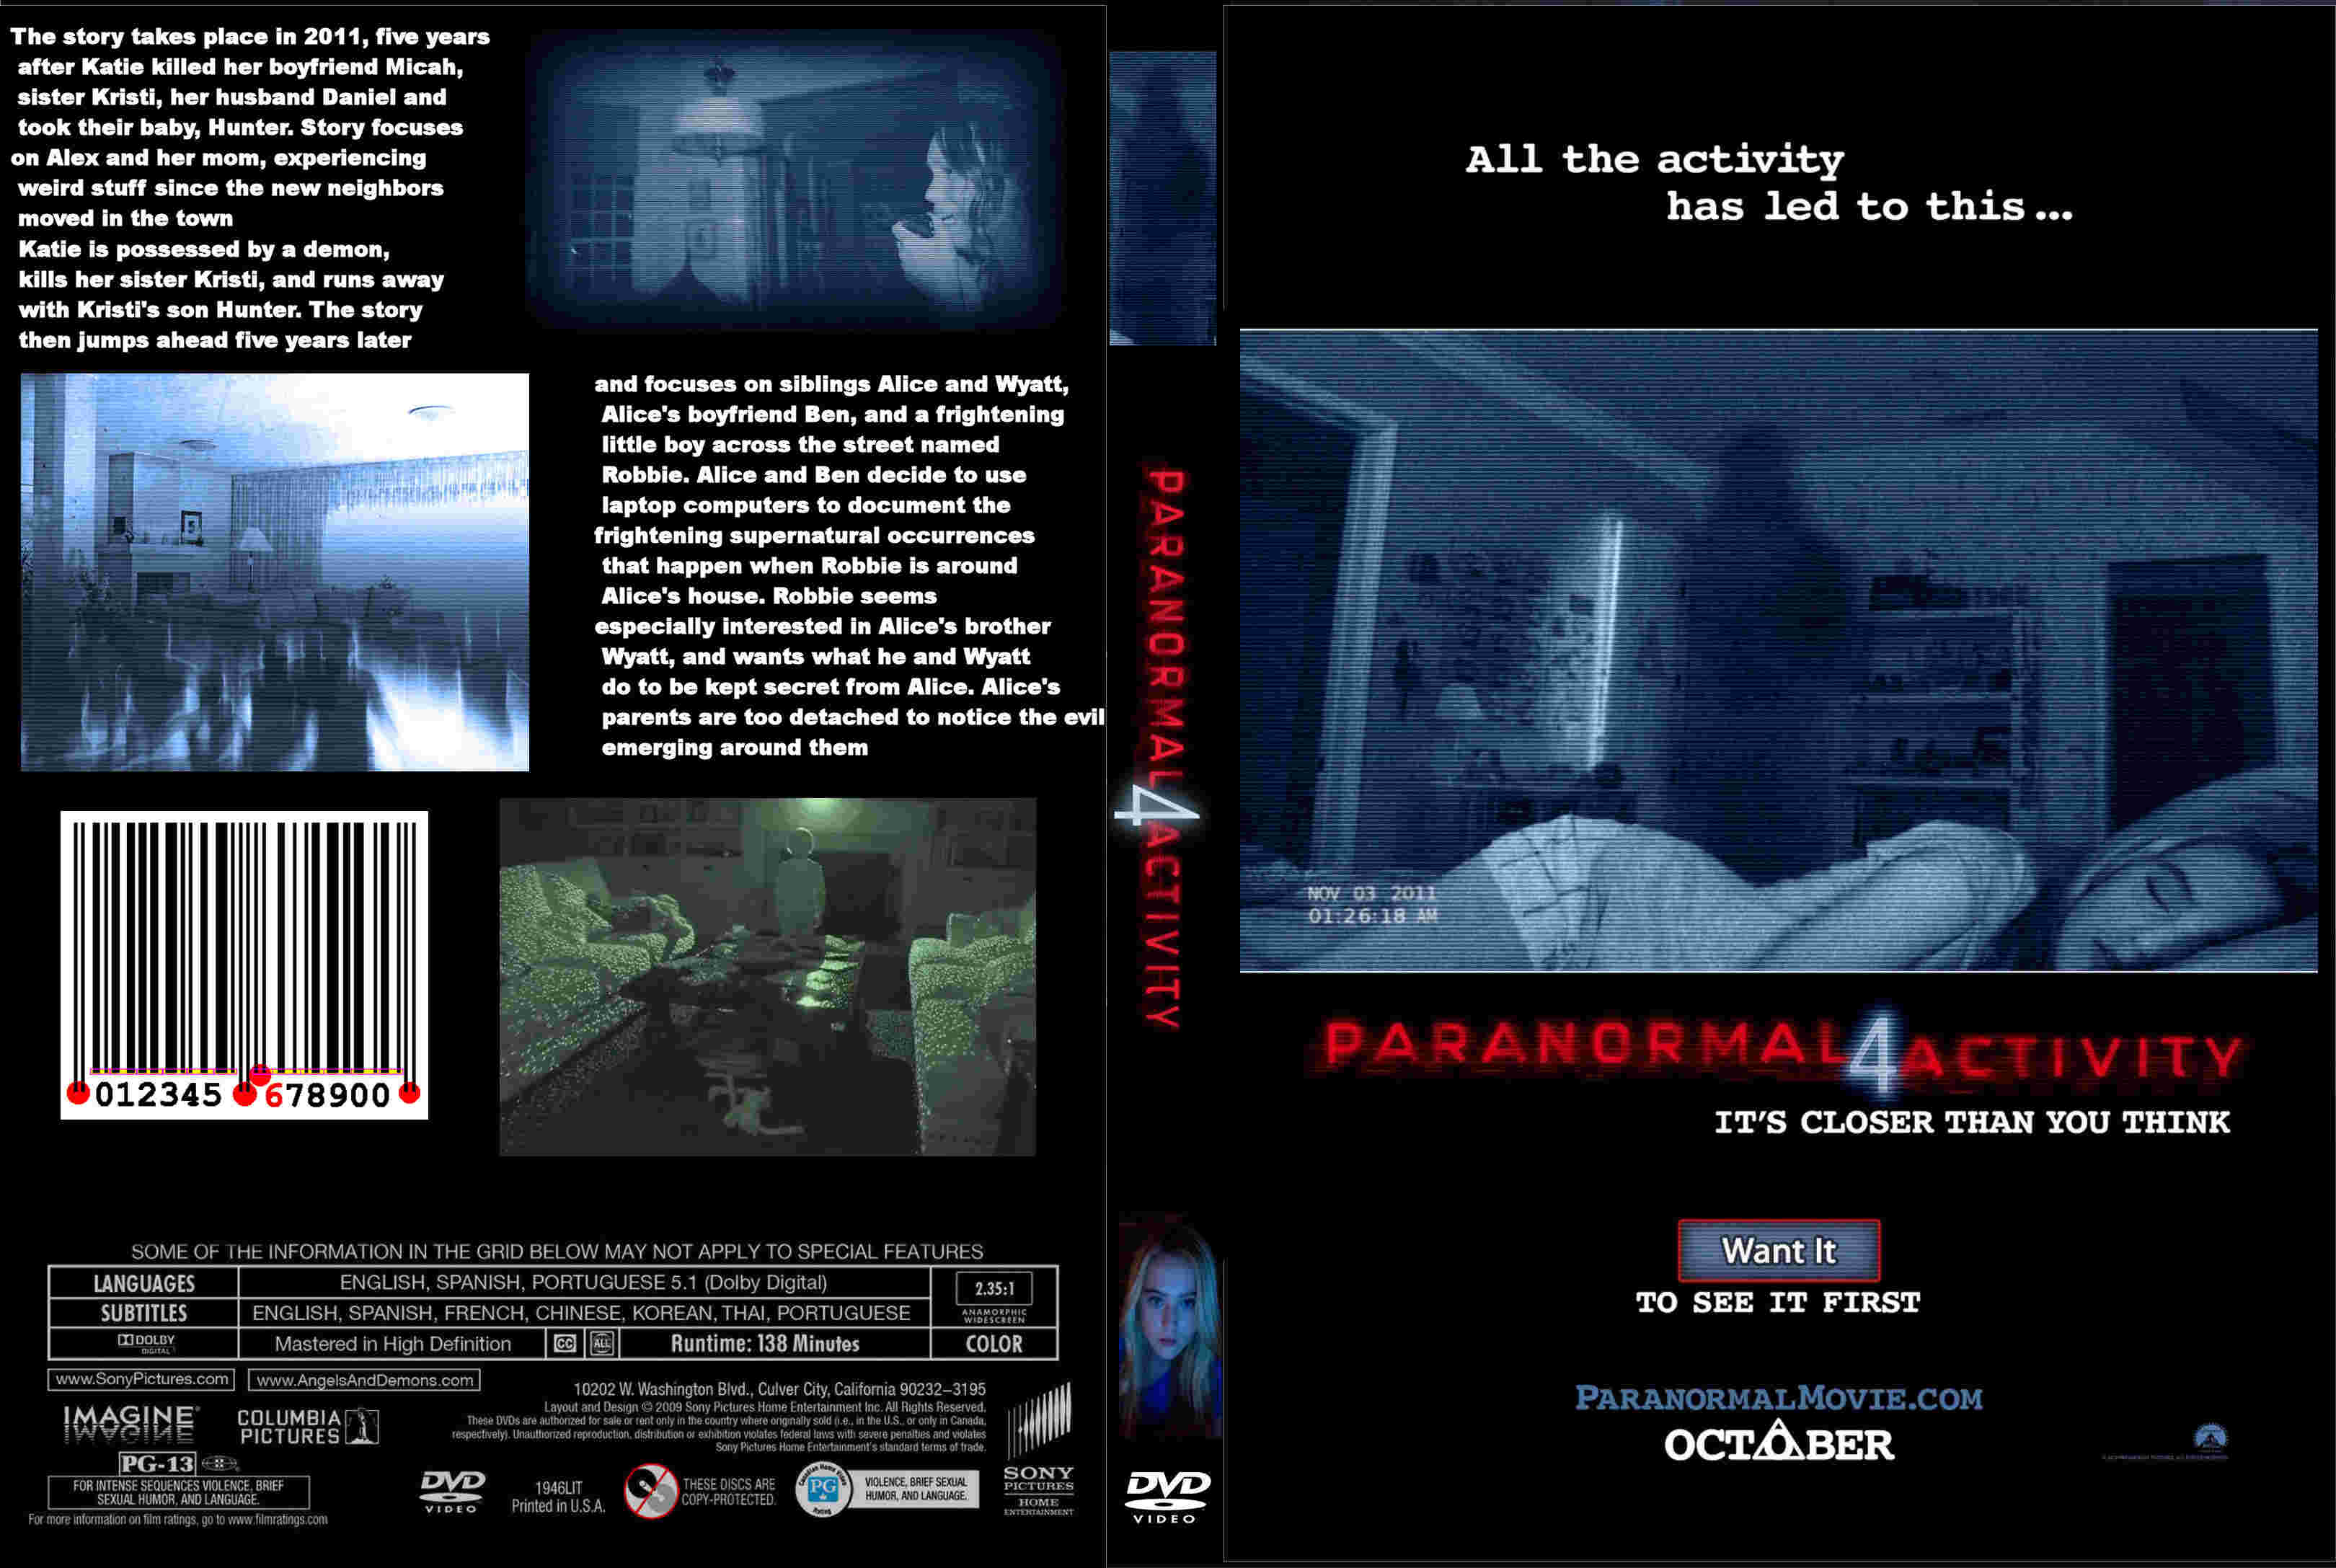 paranormal activity 5 cover - photo #26